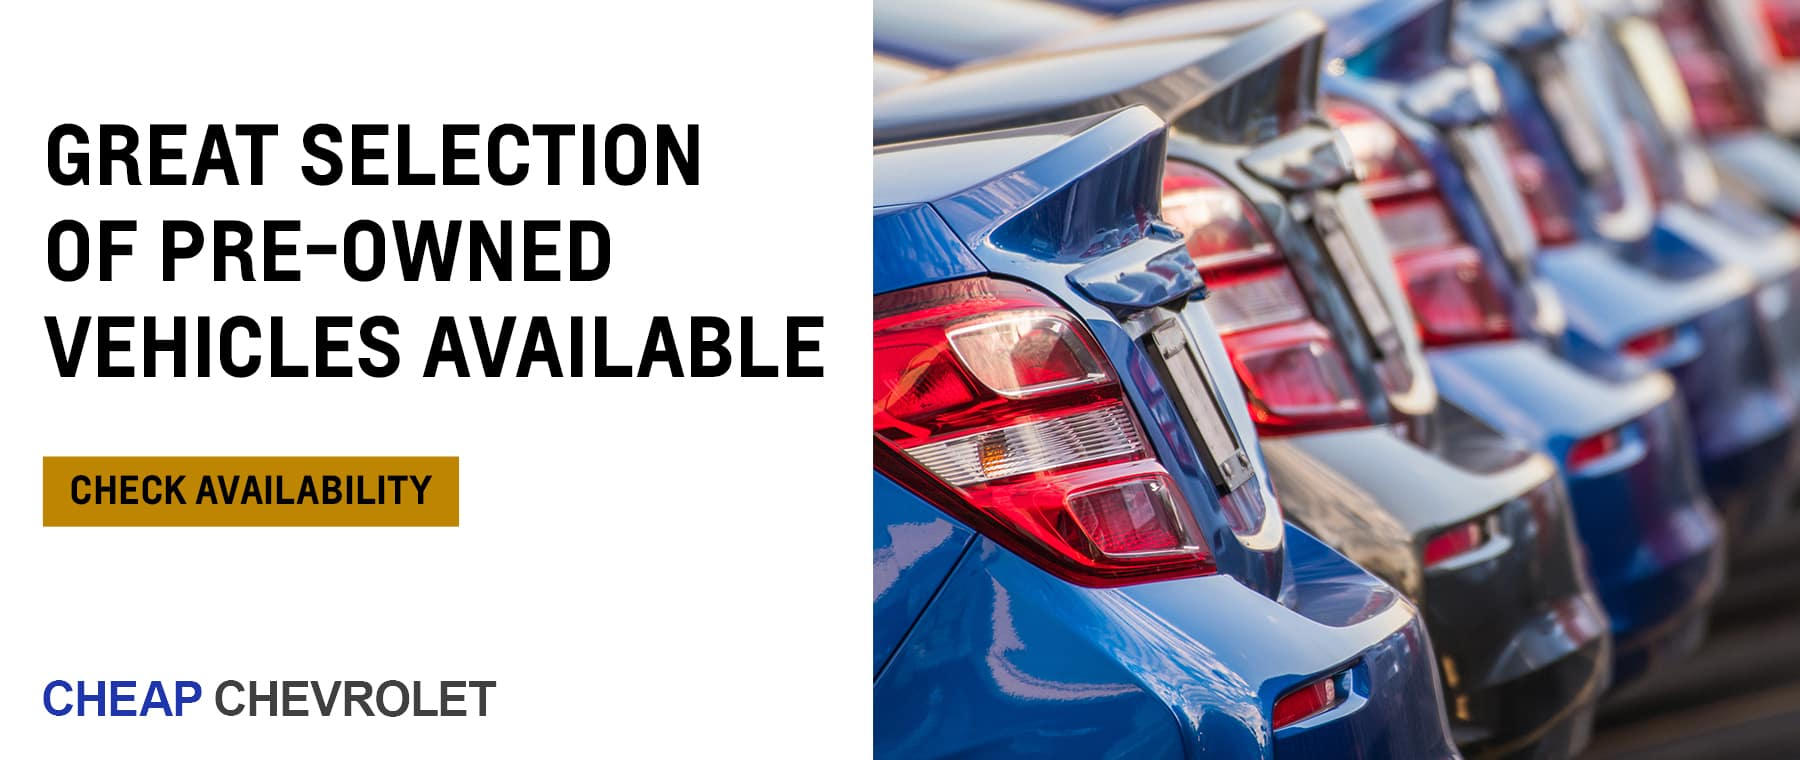 Great selection of Pre-Owned Vehicles Available